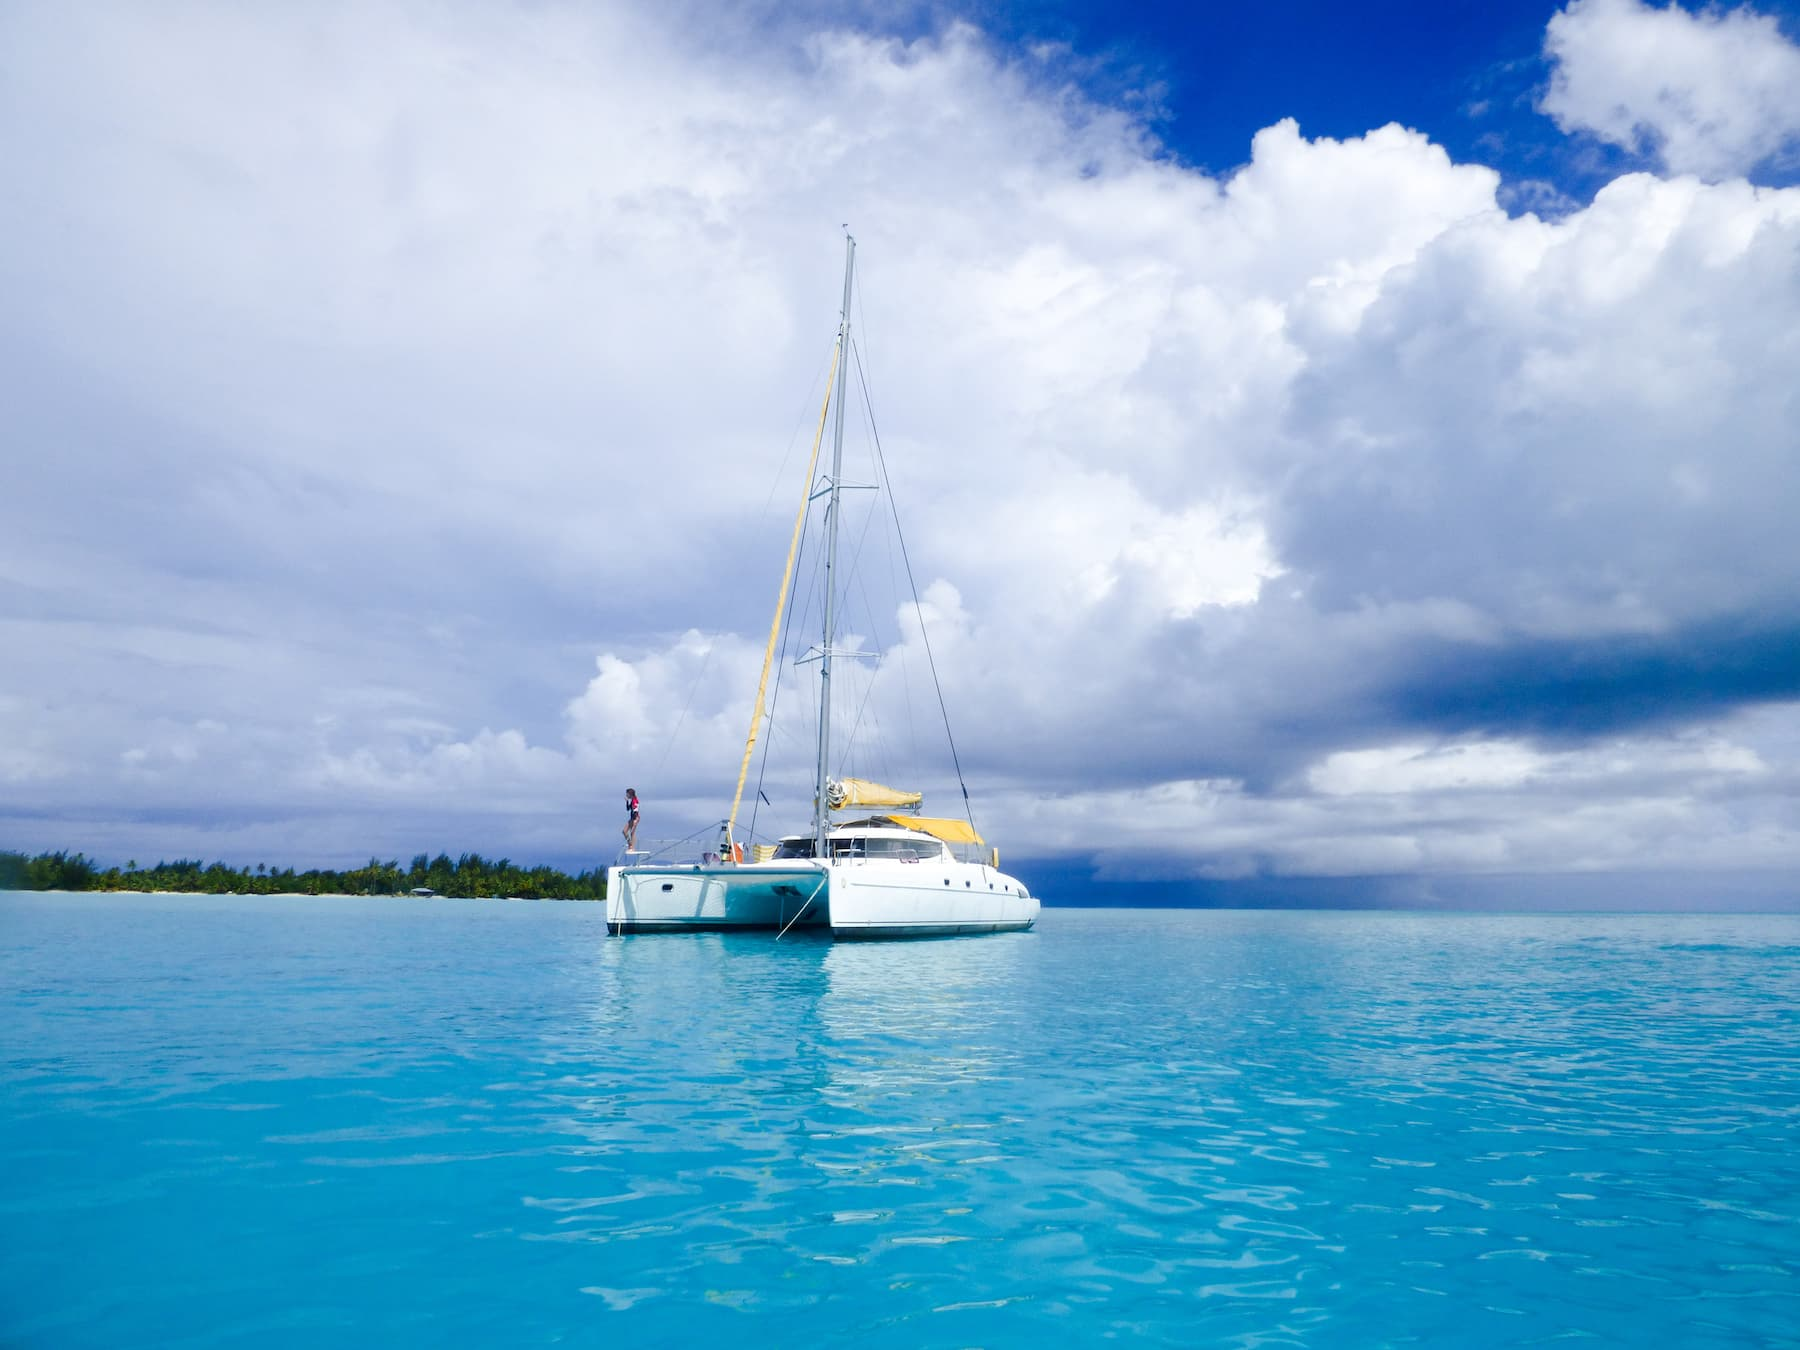 https://tahititourisme.ca/wp-content/uploads/2017/08/bateau-tlc-modif-11-copie.jpg